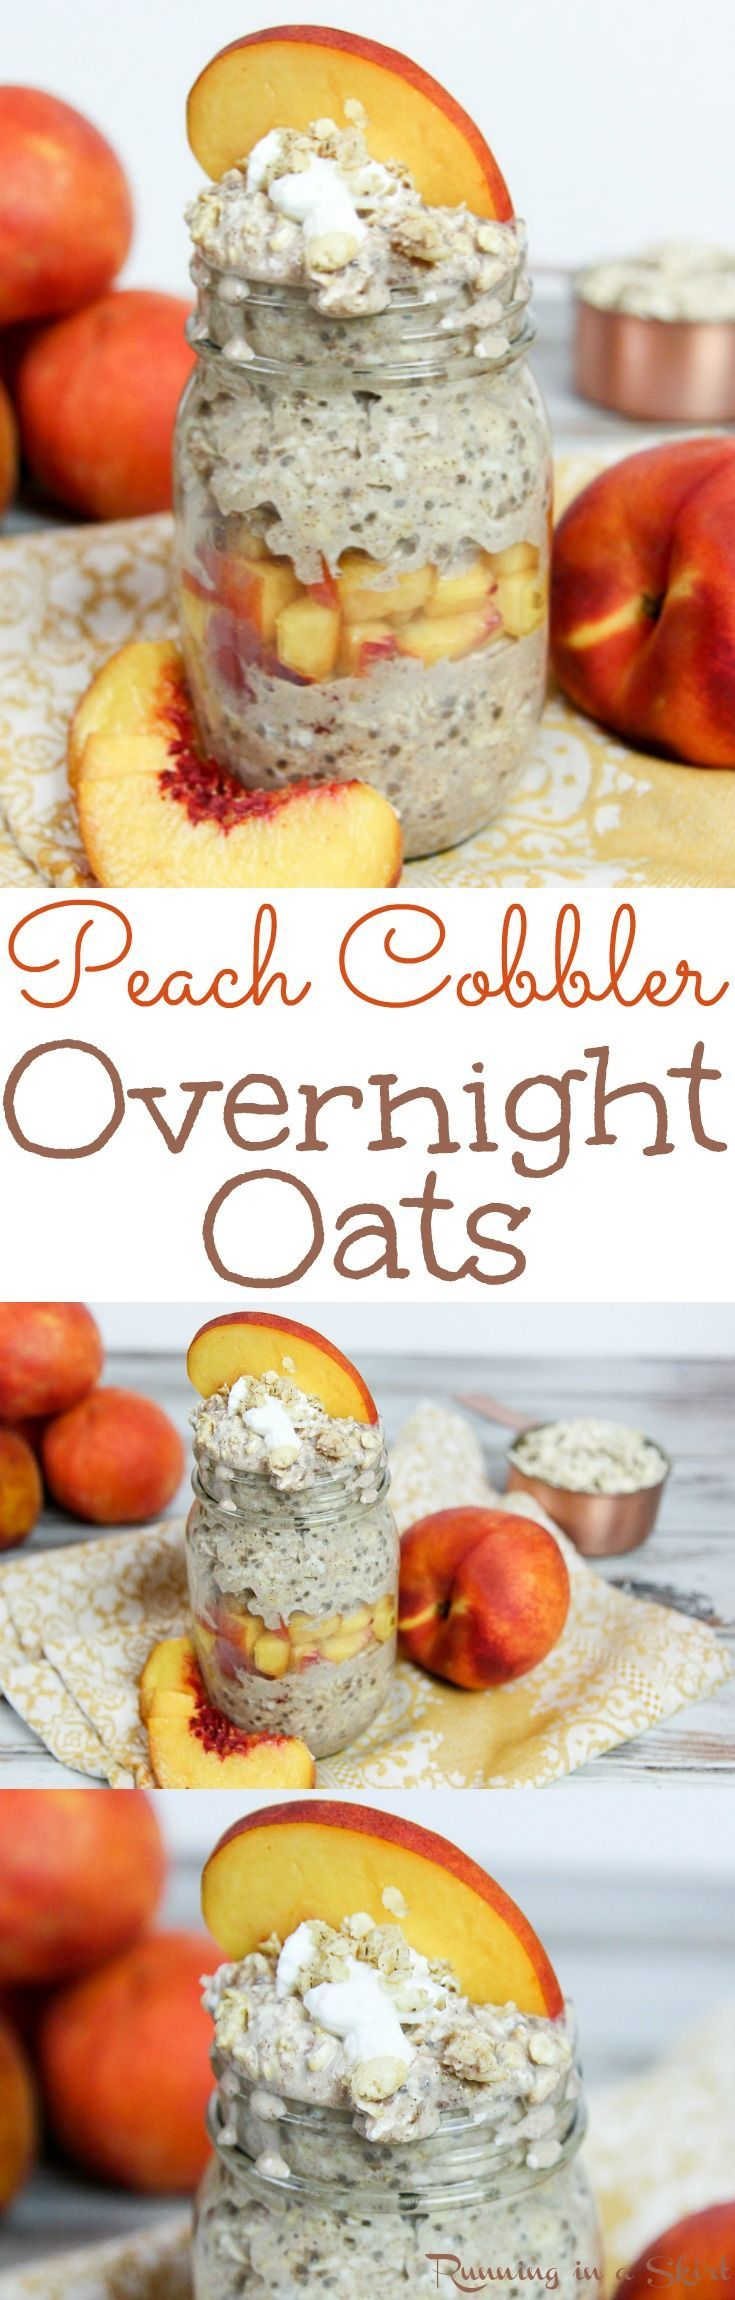 Peach Cobbler Overnight Oats recipe! A healthy peach overnight oats in a jar with almond milk, cinnamon and greek yogurt. The perfect way to start your mornings. Includes a diary free, without yogurt option. / Running in a Skirt